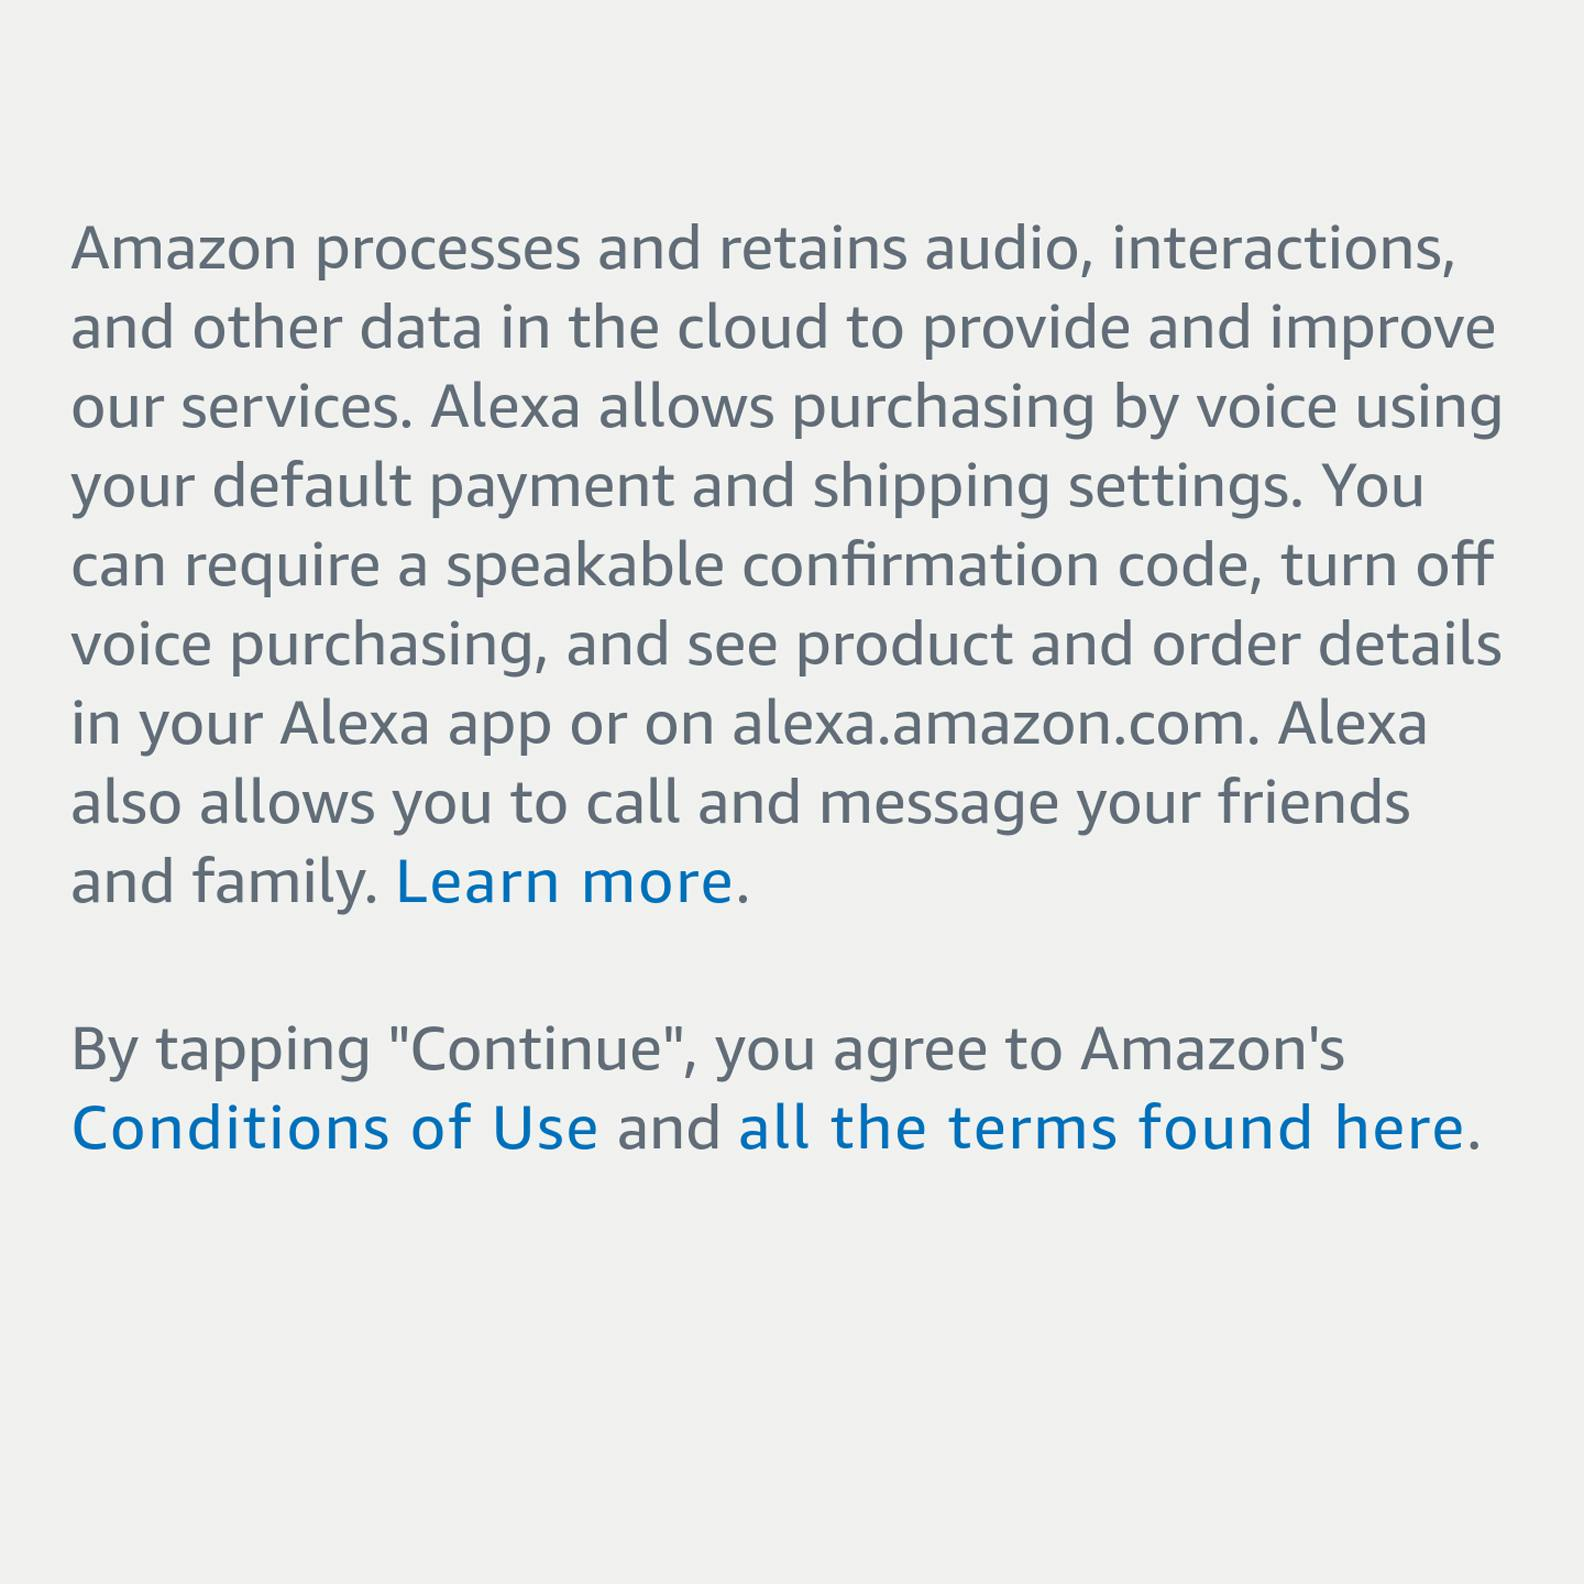 how to delete contacts from alexa